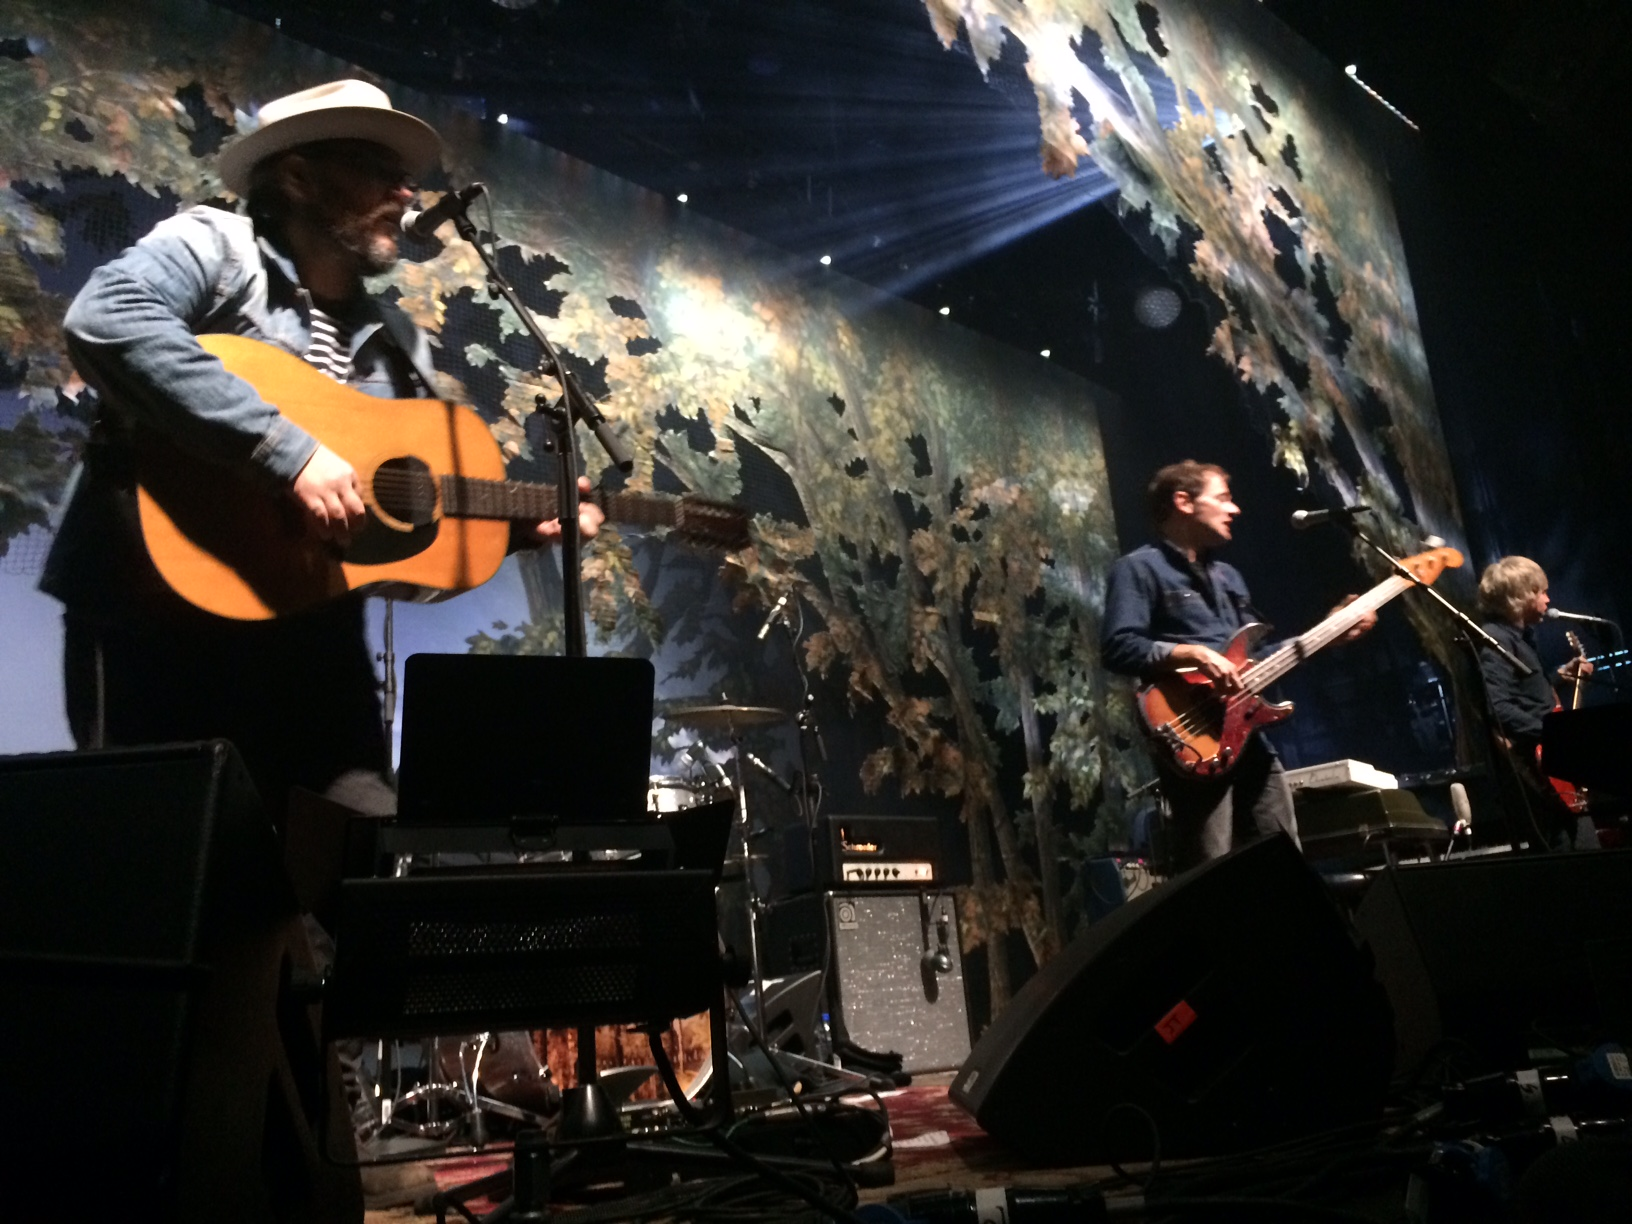 """Concertreview: """"Don't tell me that you don't have your own Trumps; I know you do!"""" – Jeff Tweedy, Wilco"""